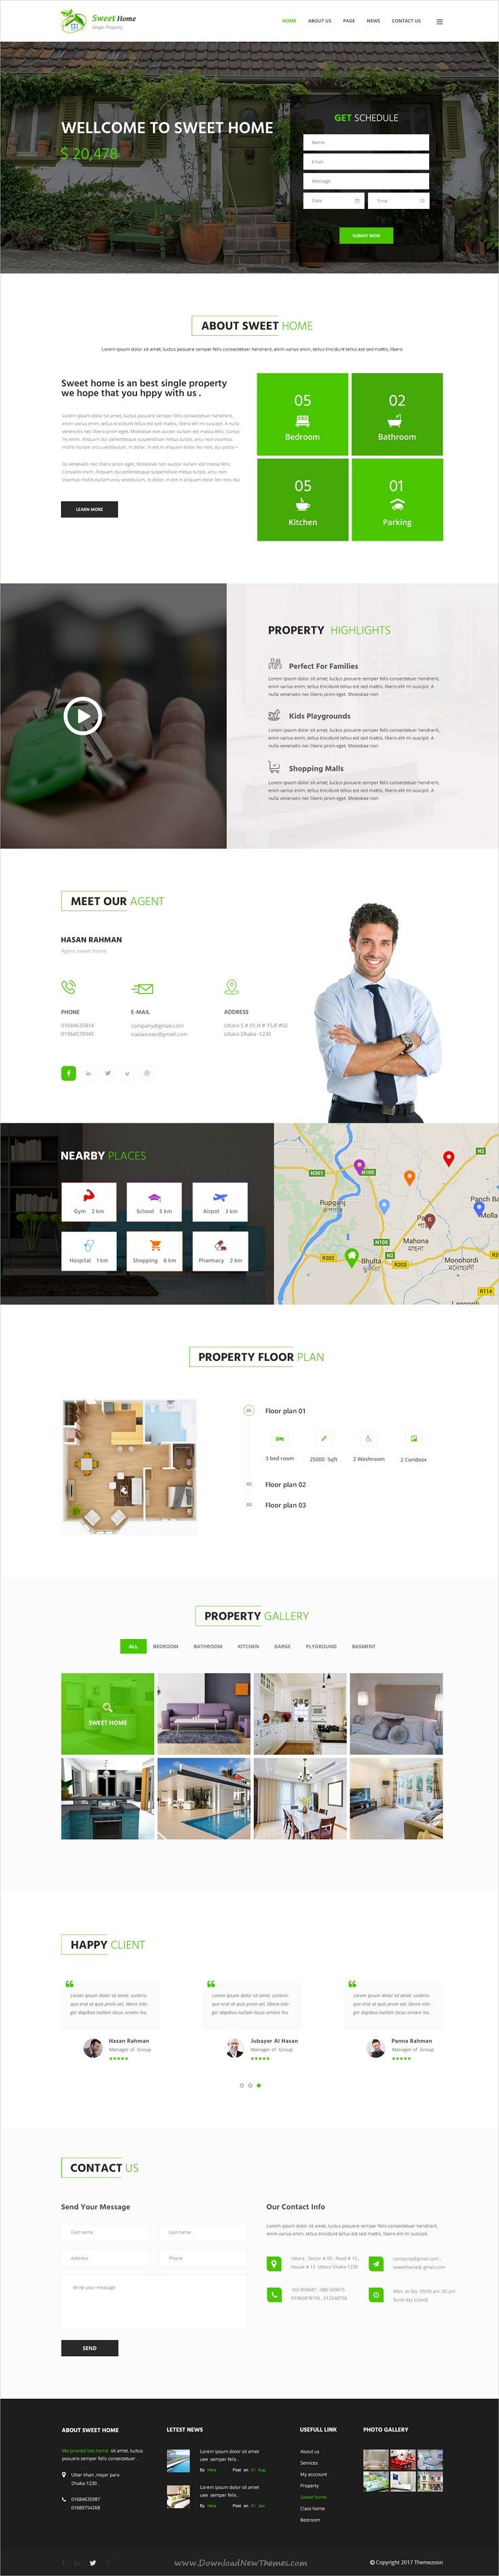 Sweet home is clean and modern design #PSD template for single #property and real estate agencies #website with 15 layered PSD files download now..